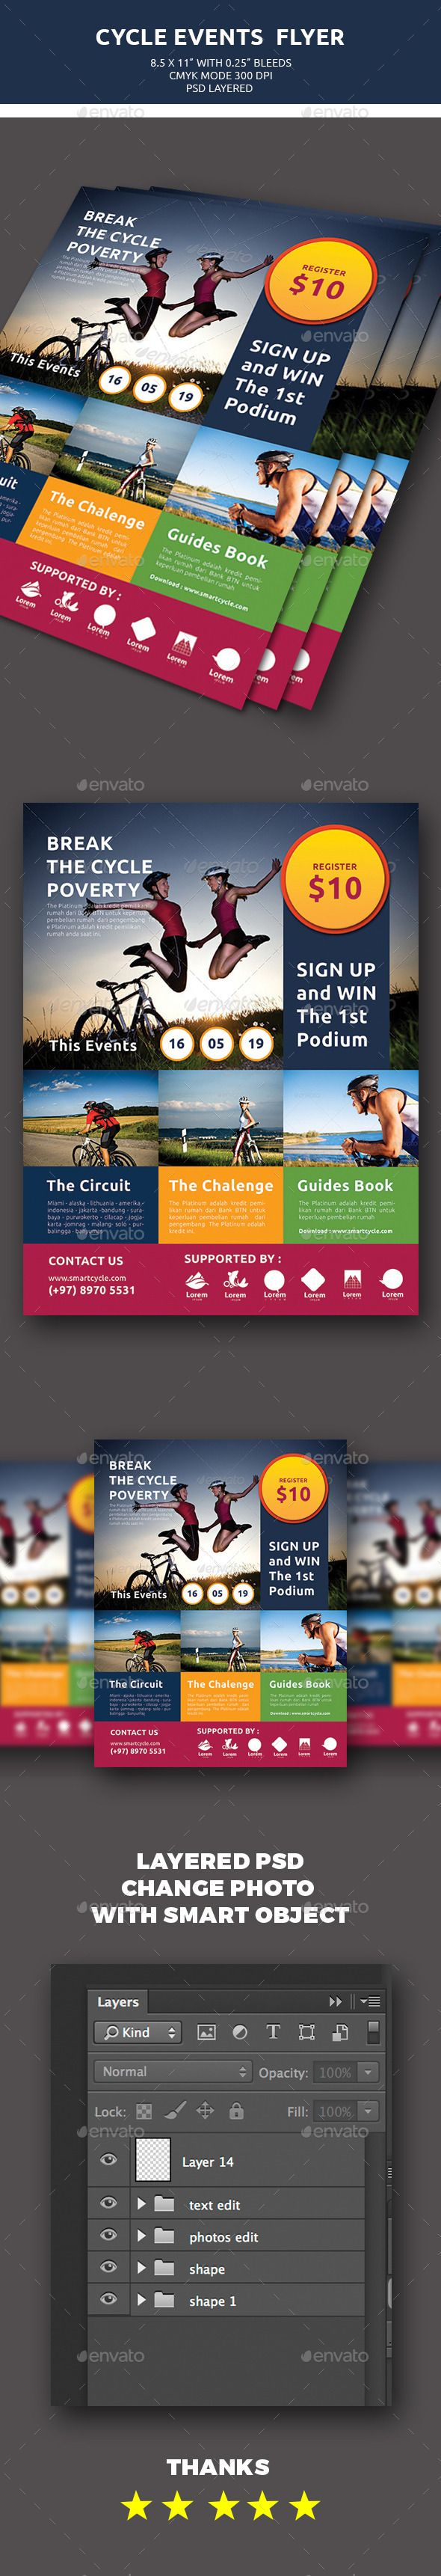 Cycle Events Flyer by banyustudio Cycle Events Flyer Featured : 8.511 Size 0.25 bleed CMYK MODE 300 DPI Resolution Layered Organzation PSD Mode Font Link Image Cr